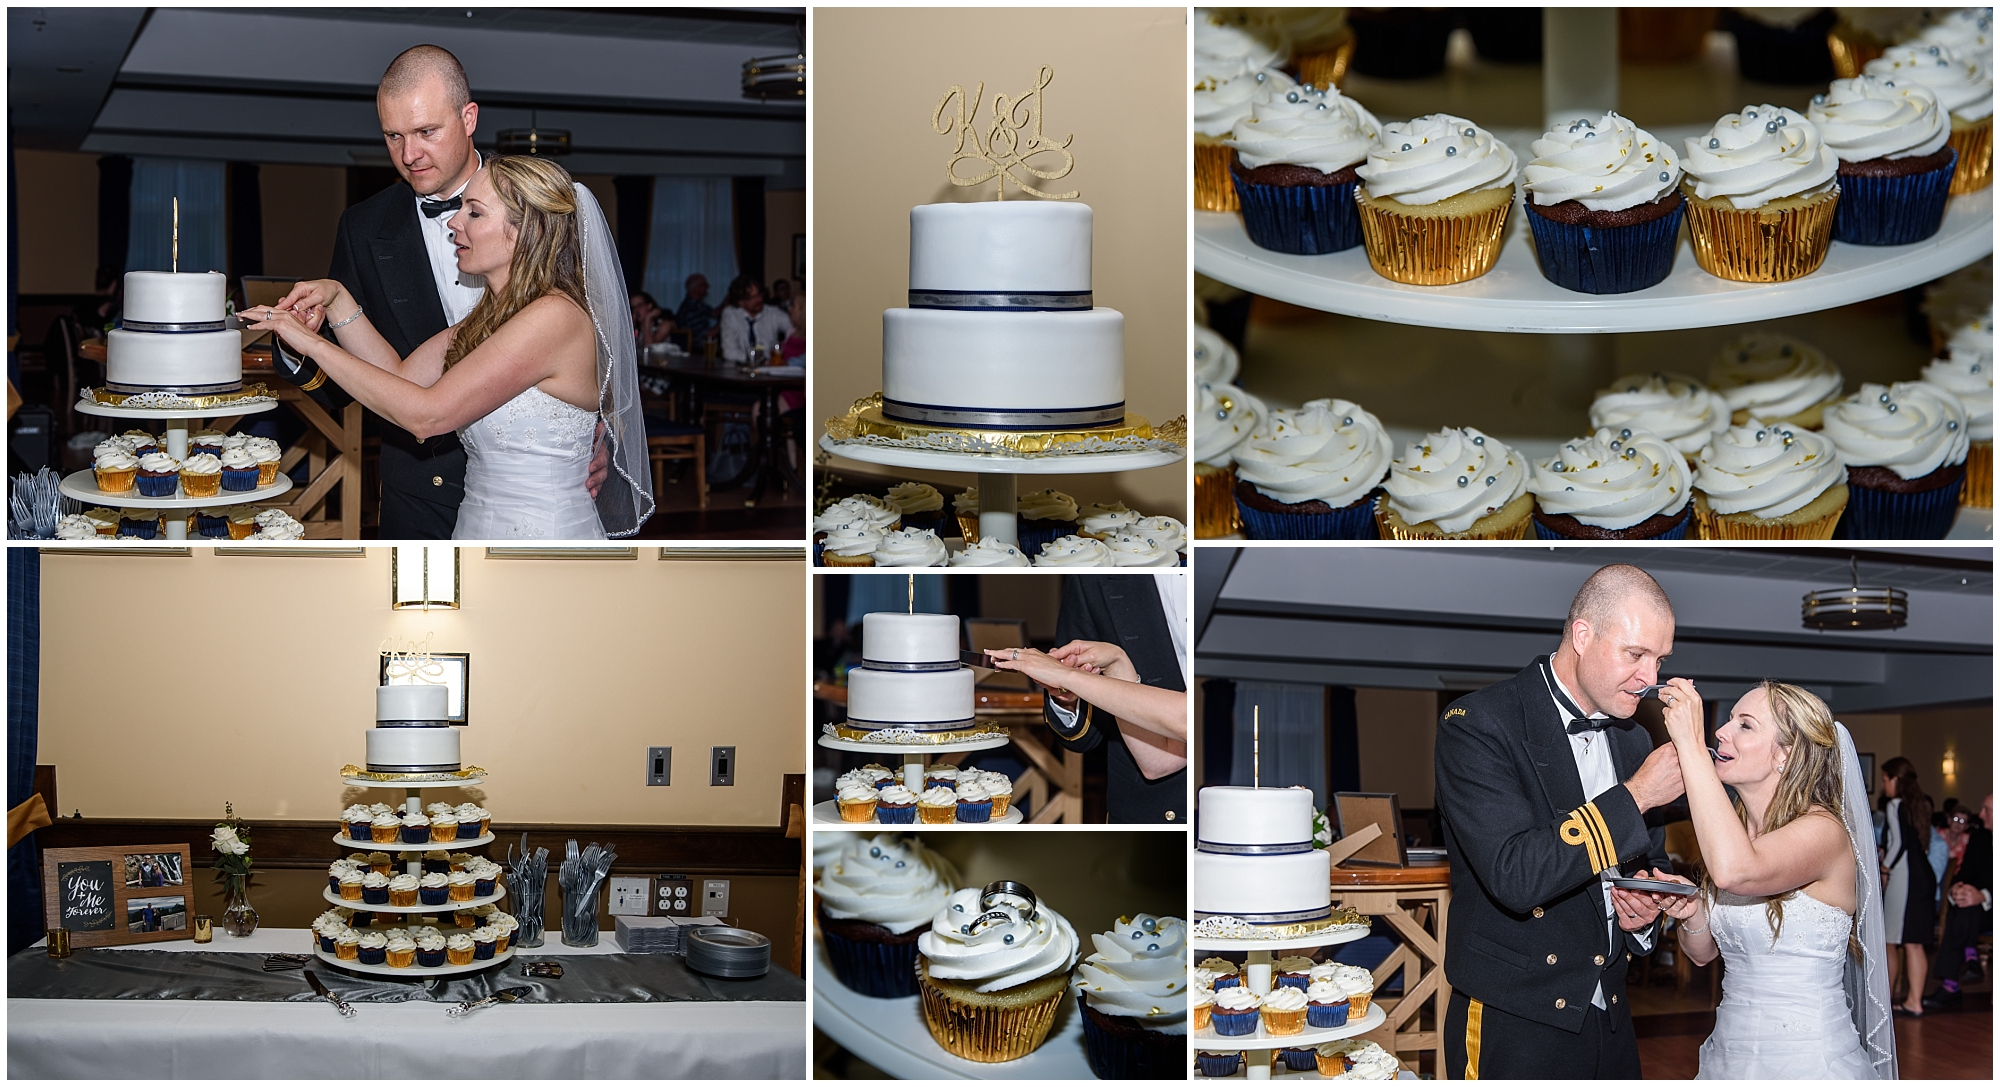 The bride and groom cut the wedding cake and feed each other during their wedding at Juno Tower in Halifax.